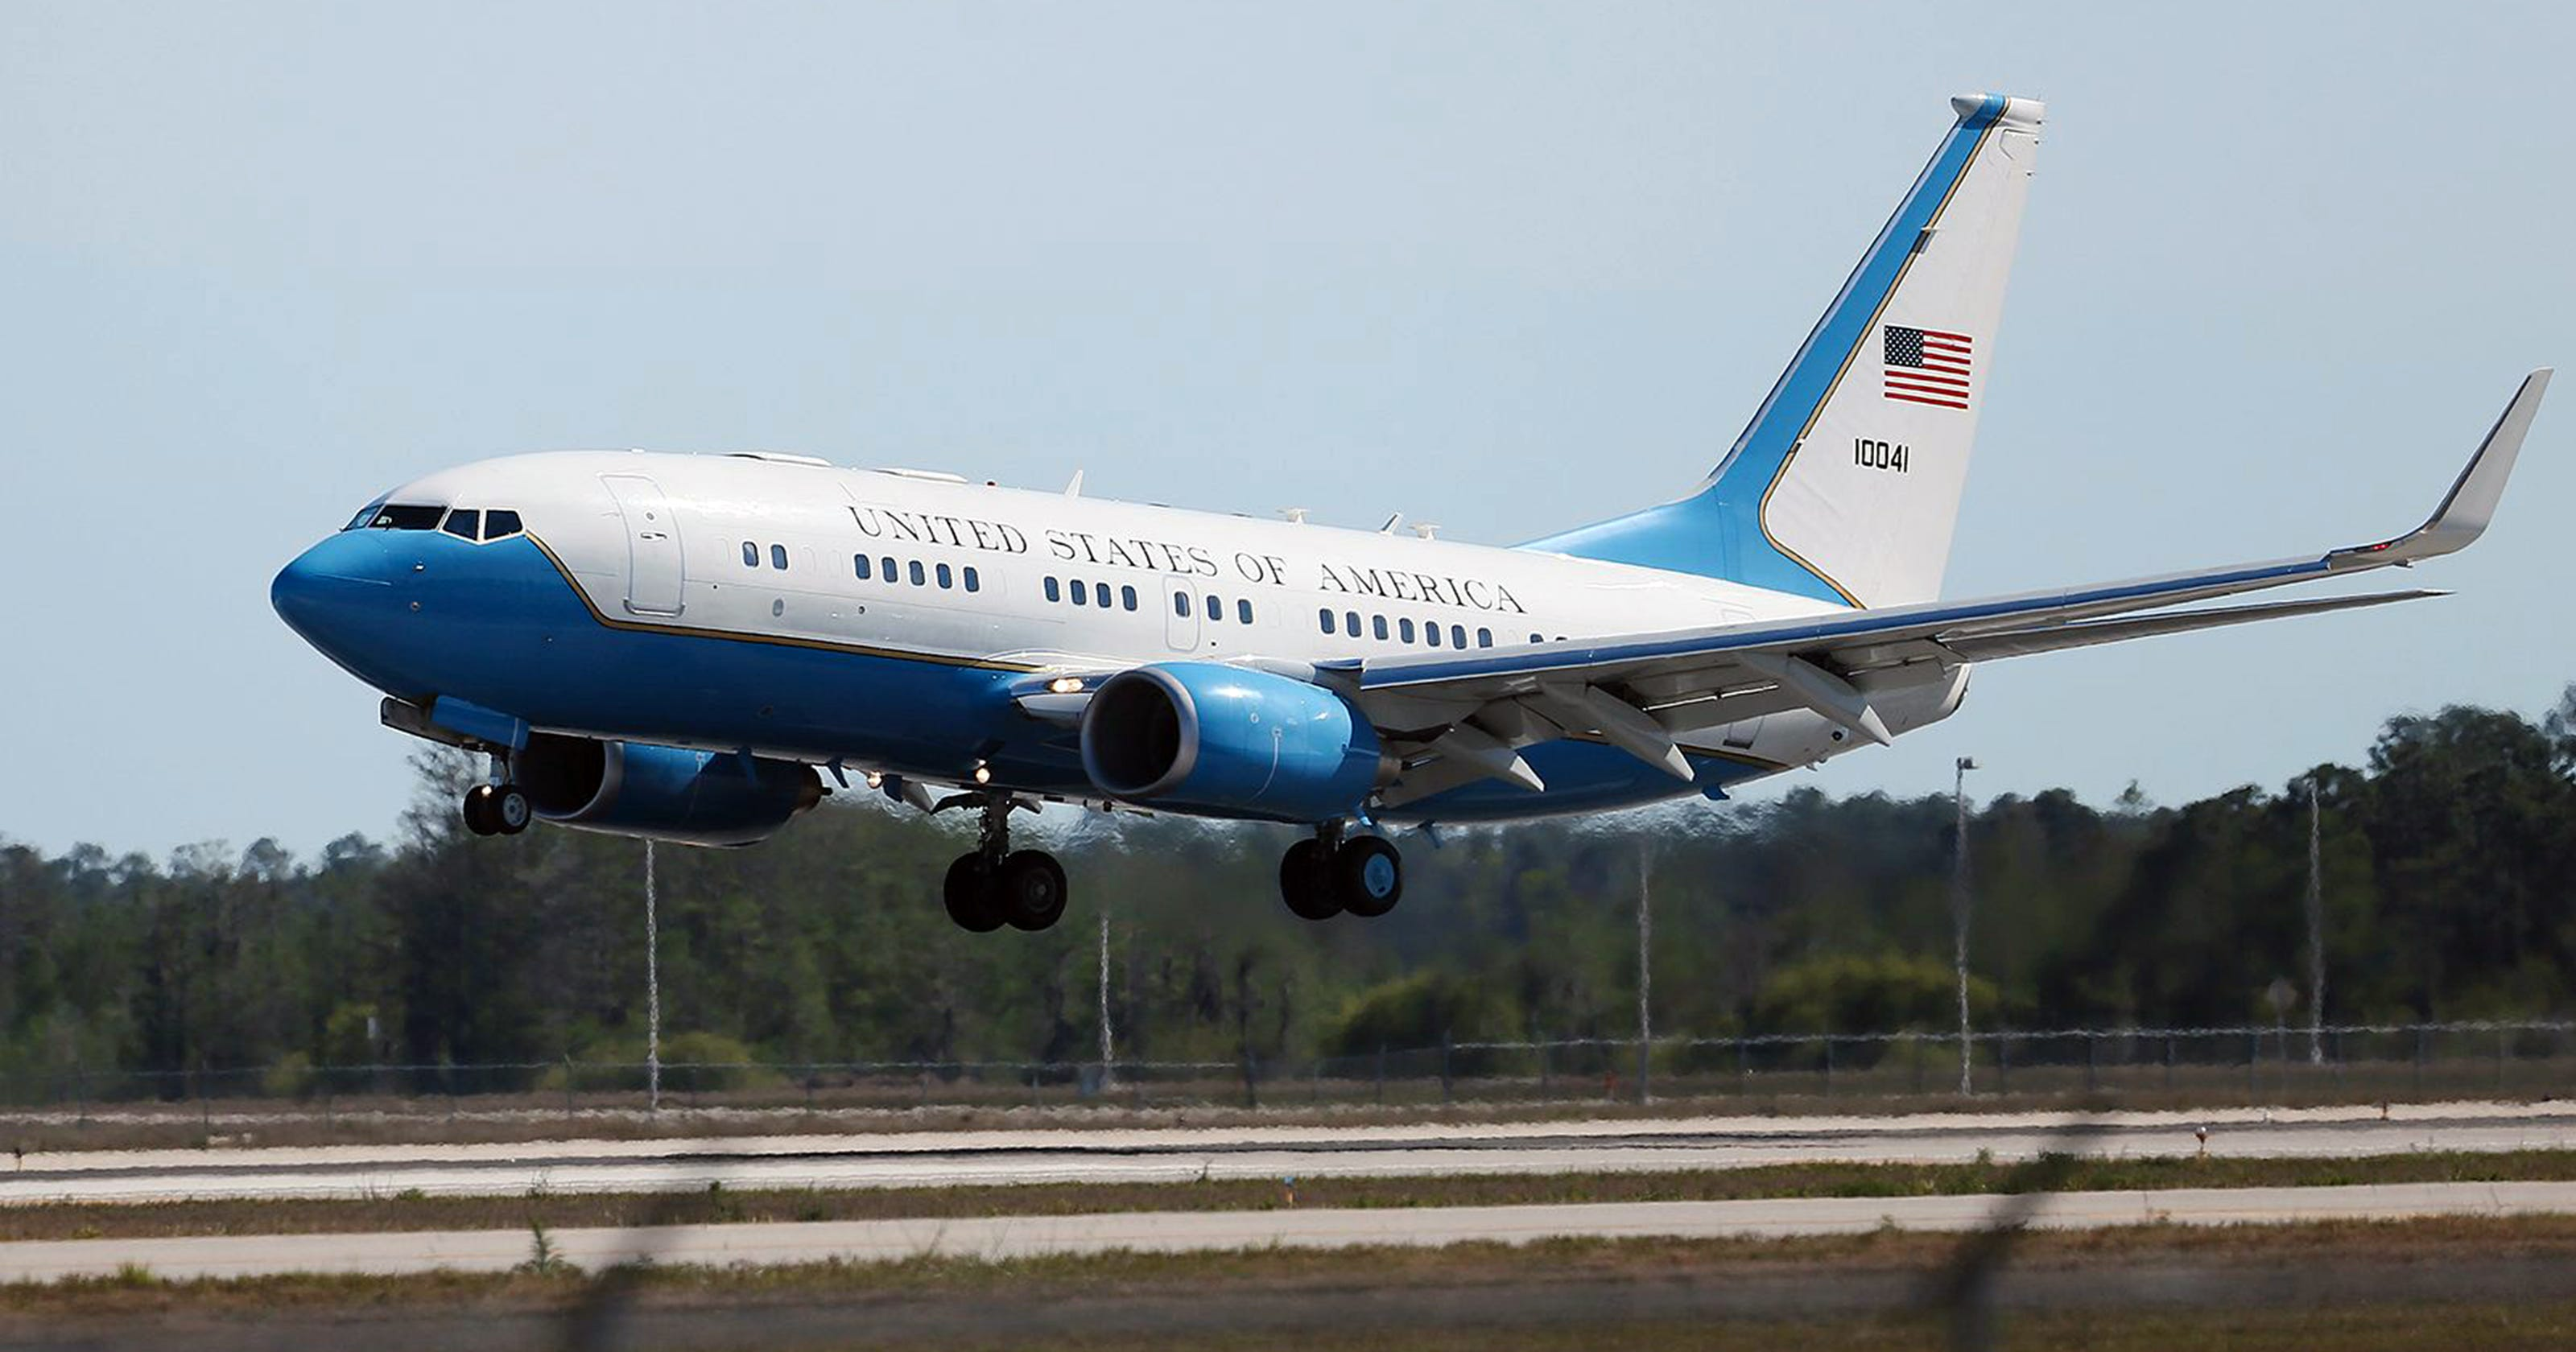 6 fun facts about Air Force Two